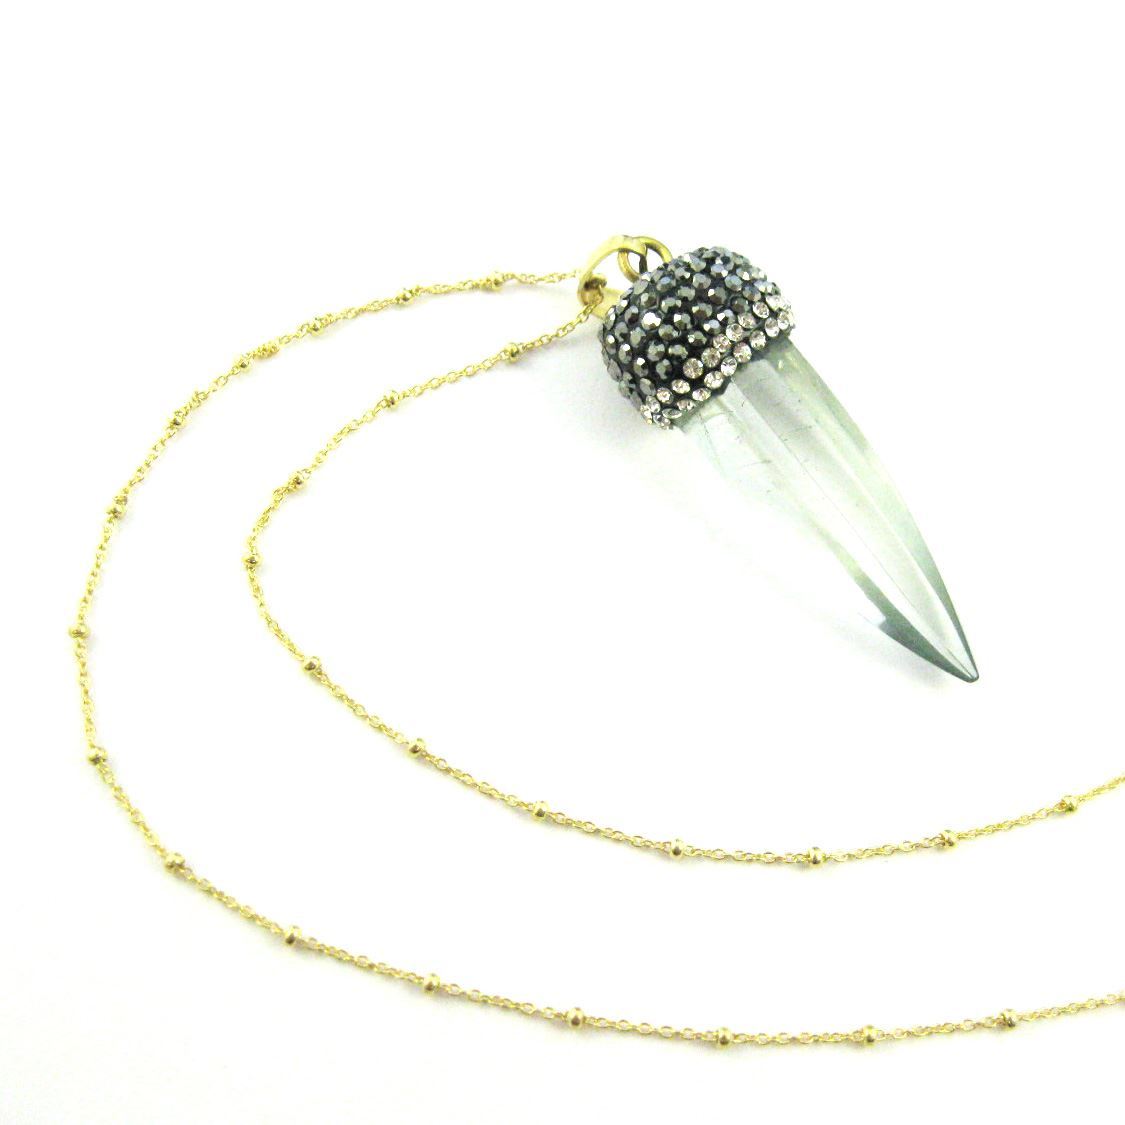 Crystal Spike Pave Necklace- Gold plated Sterling Silver Beaded Necklace Chain- Crystal Quartz Pendulum Pendant and Zircon Pave